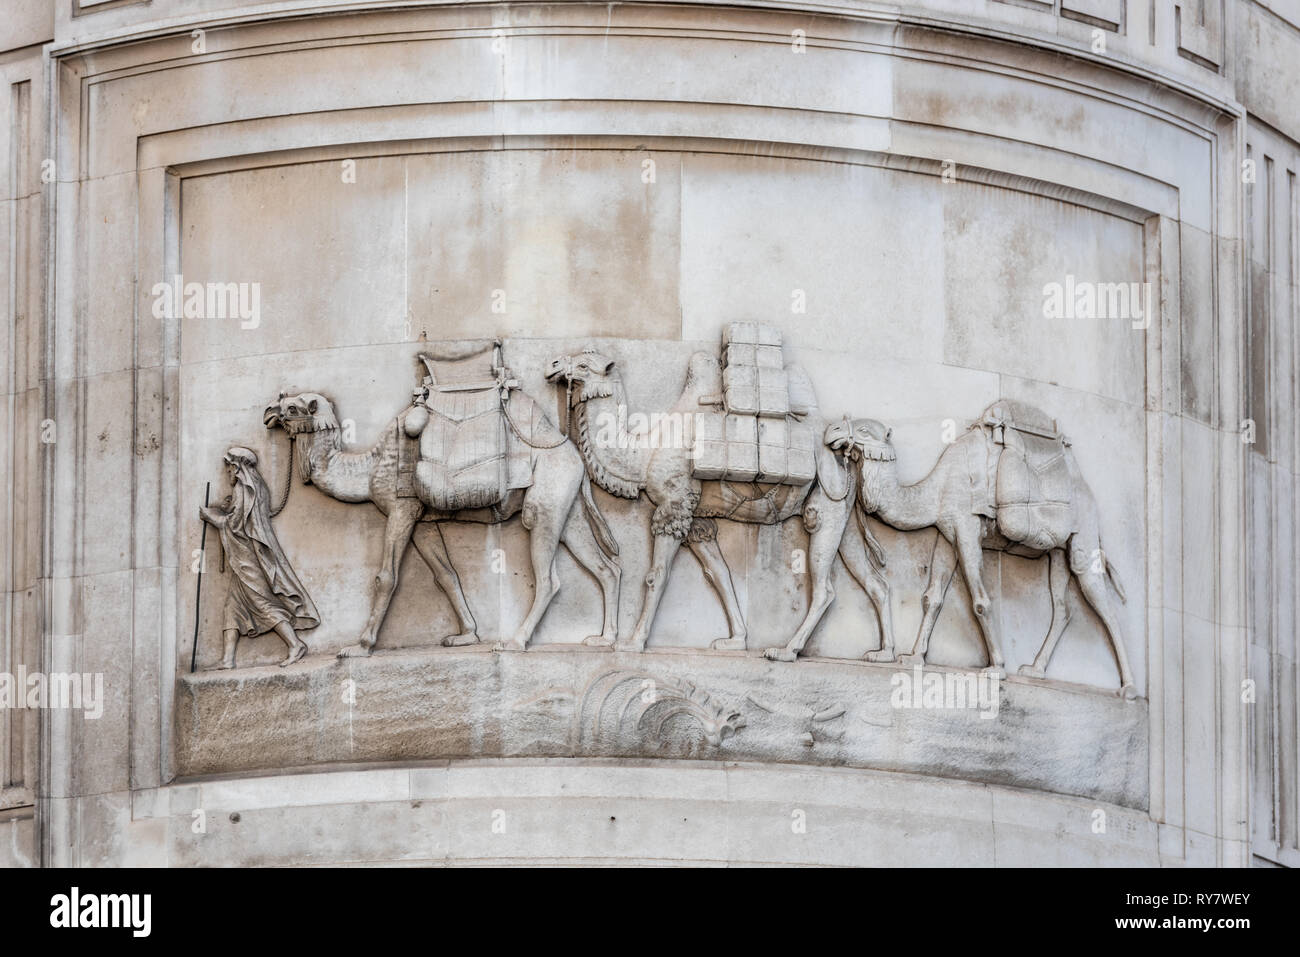 An unlikely sight  on a City of London building. A camel train of coffee traversing the tower of Peek House, 20 Eastcheap - Stock Image